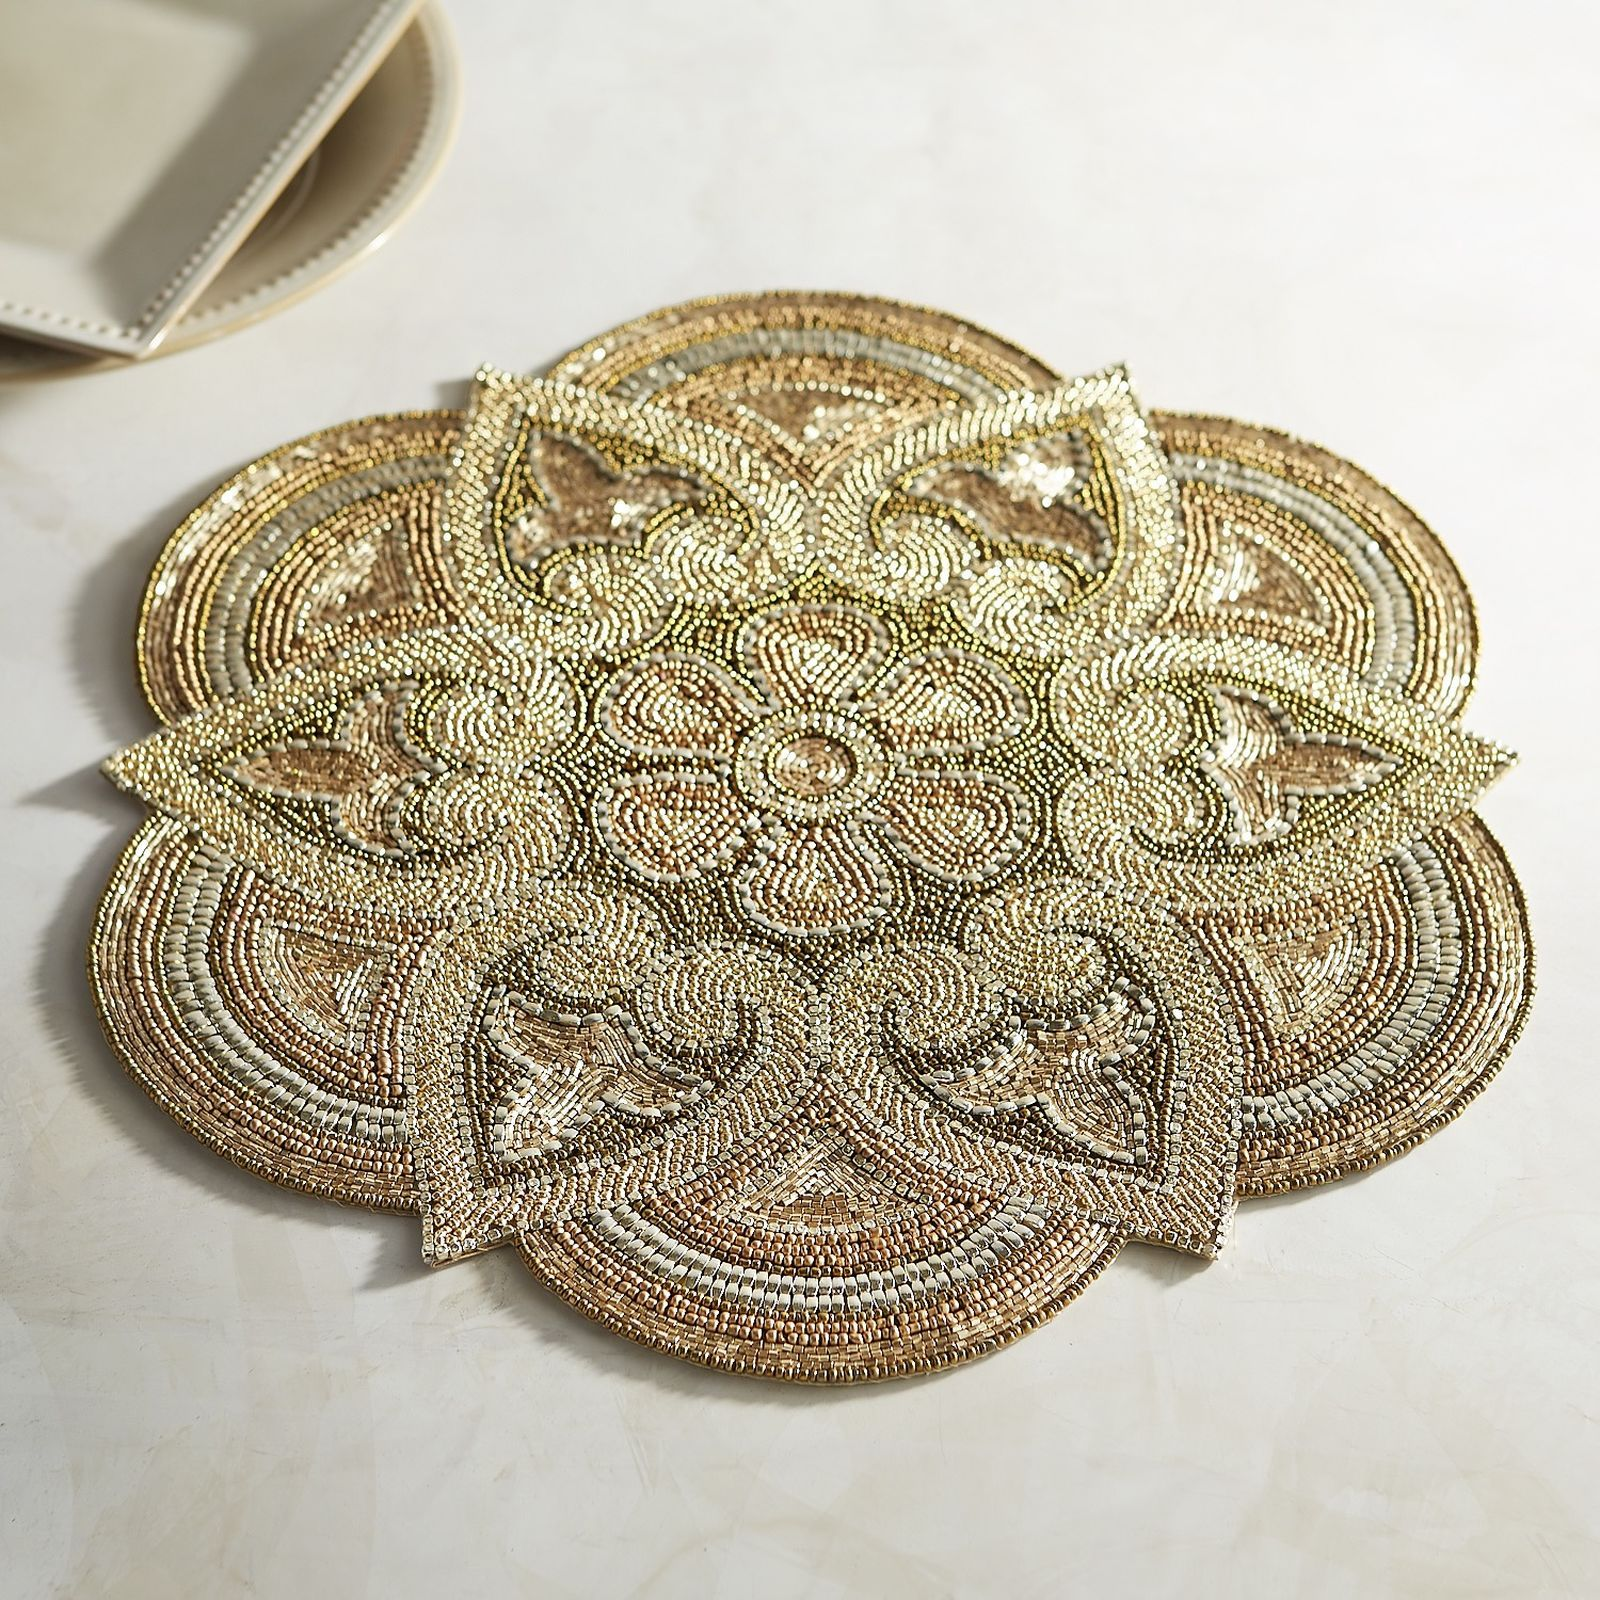 Metallic Luxe Beaded Placemat Placemats Gold Placemats Diy Placemats